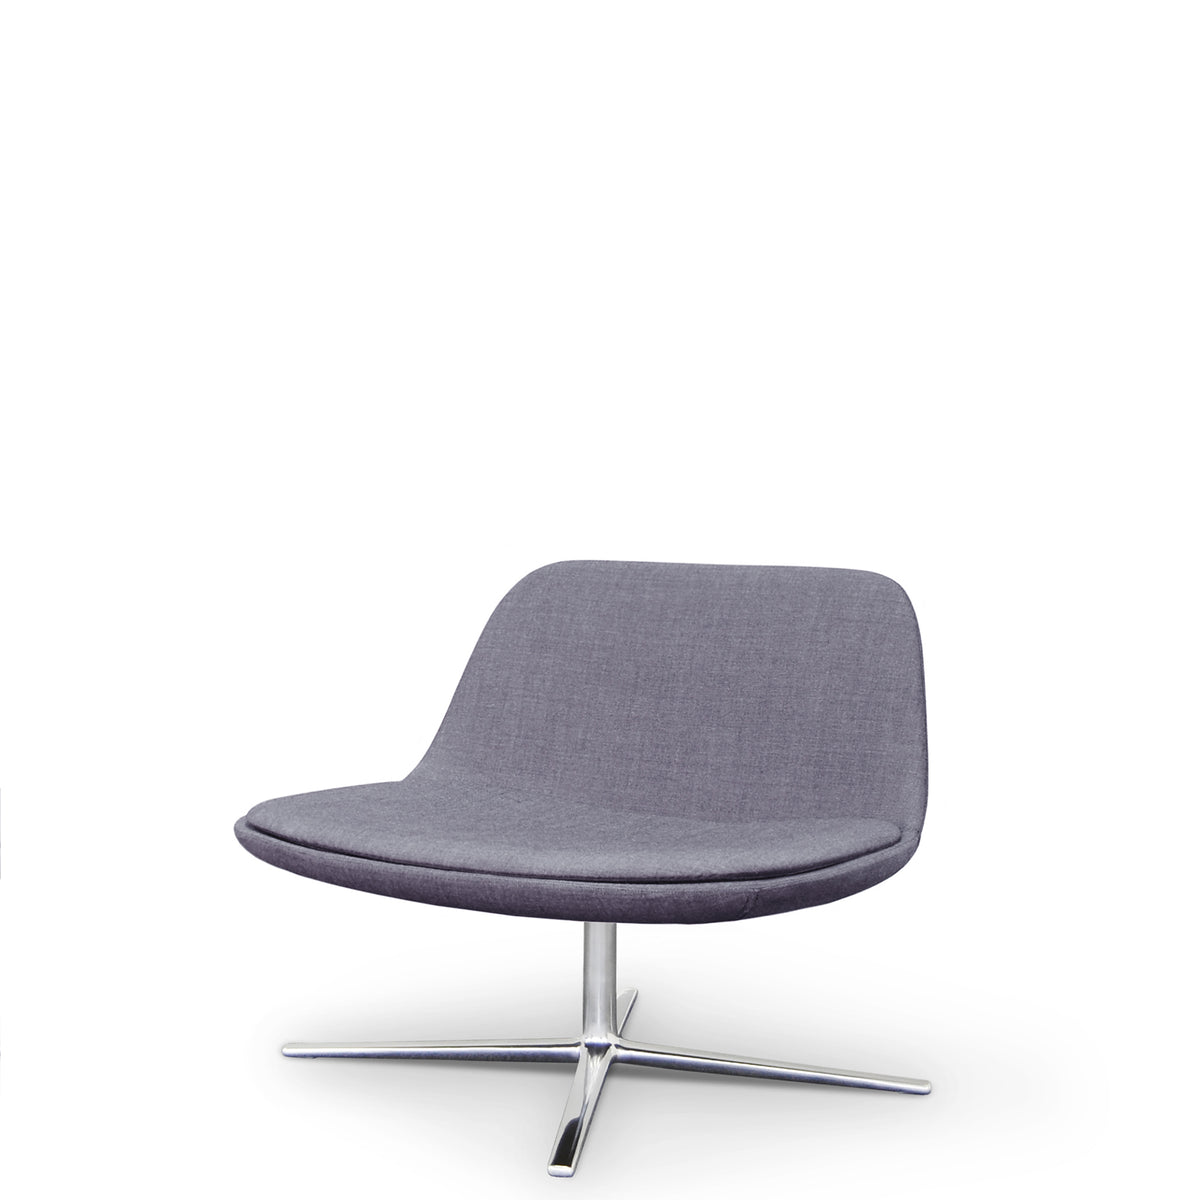 sixteen3 Office Kim Lounge Chair